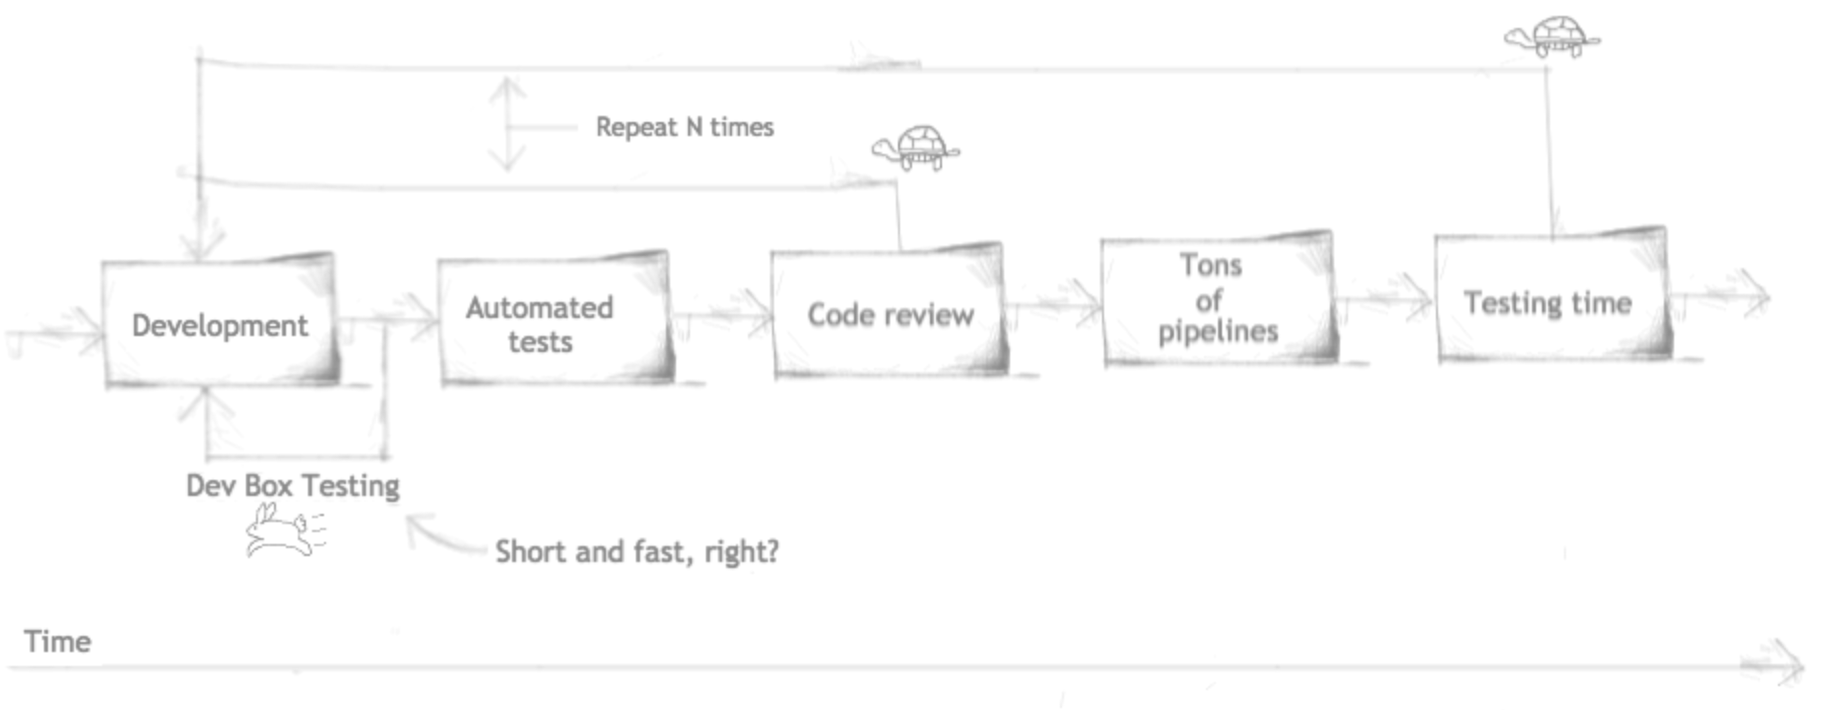 Diagram pointing that Dev Box Testing applied before code review step is fast while common test step takes to long